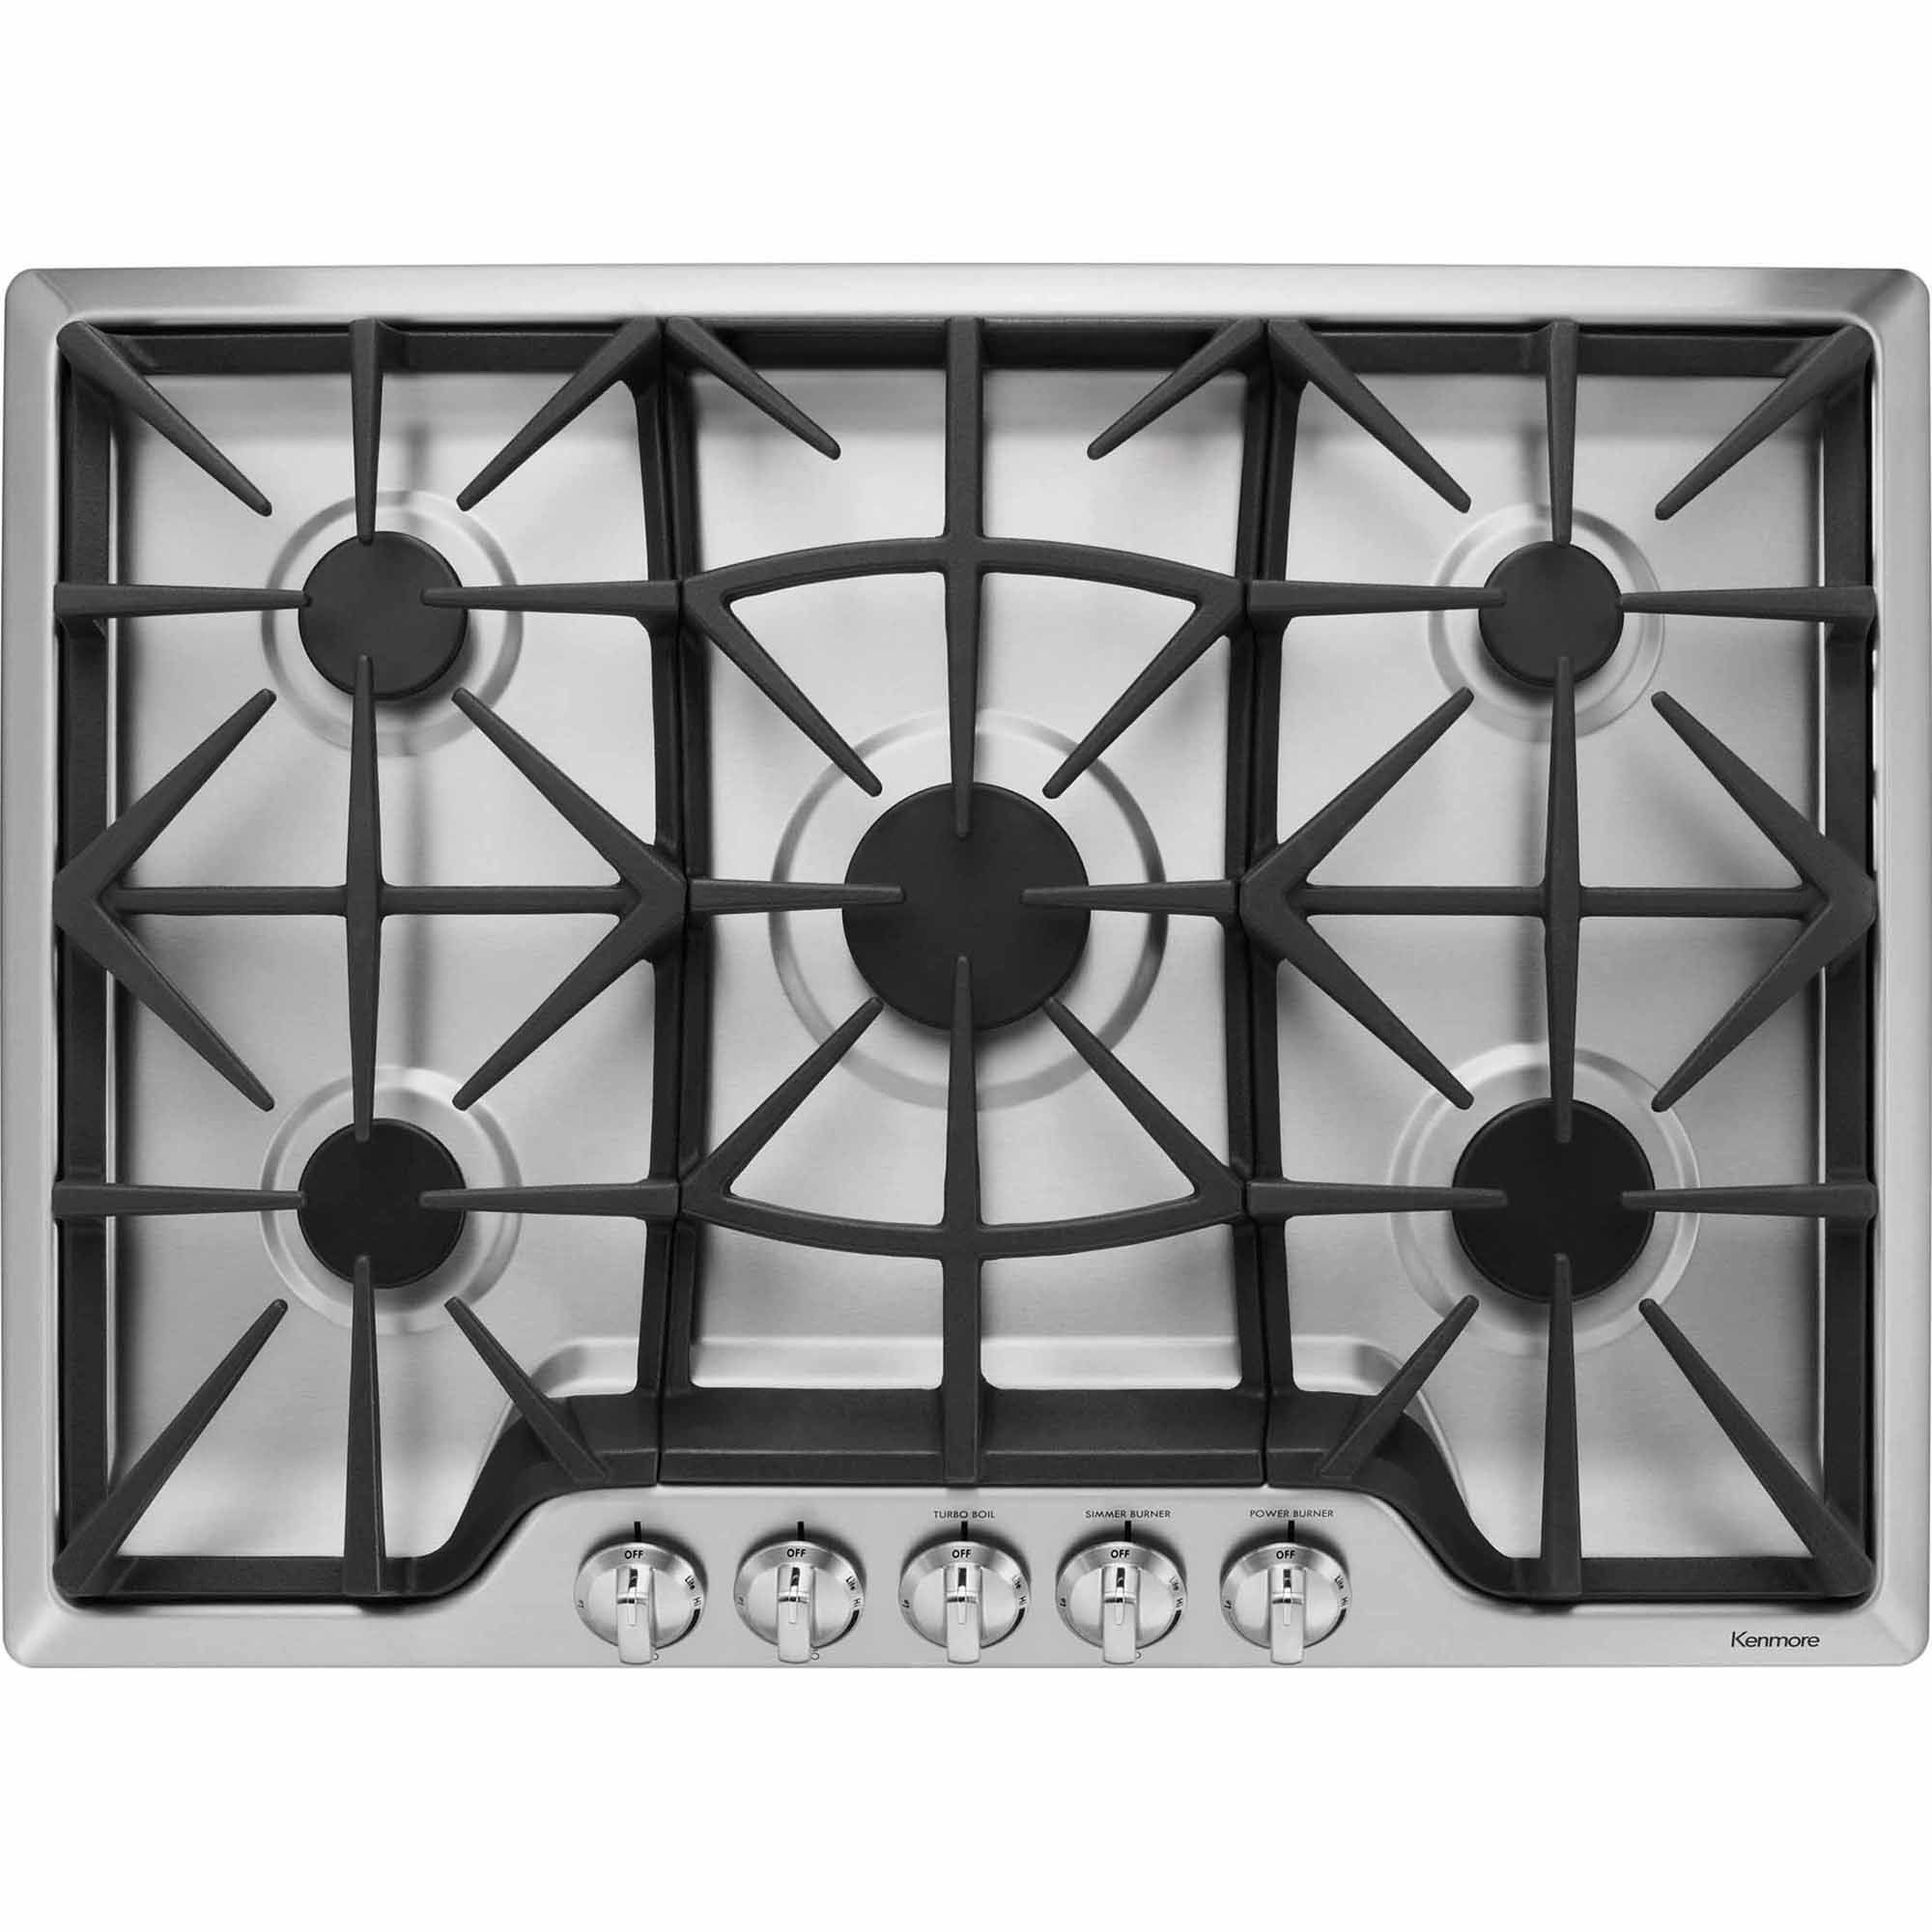 Kenmore 32683 30 gas cooktop stainless steel stainless